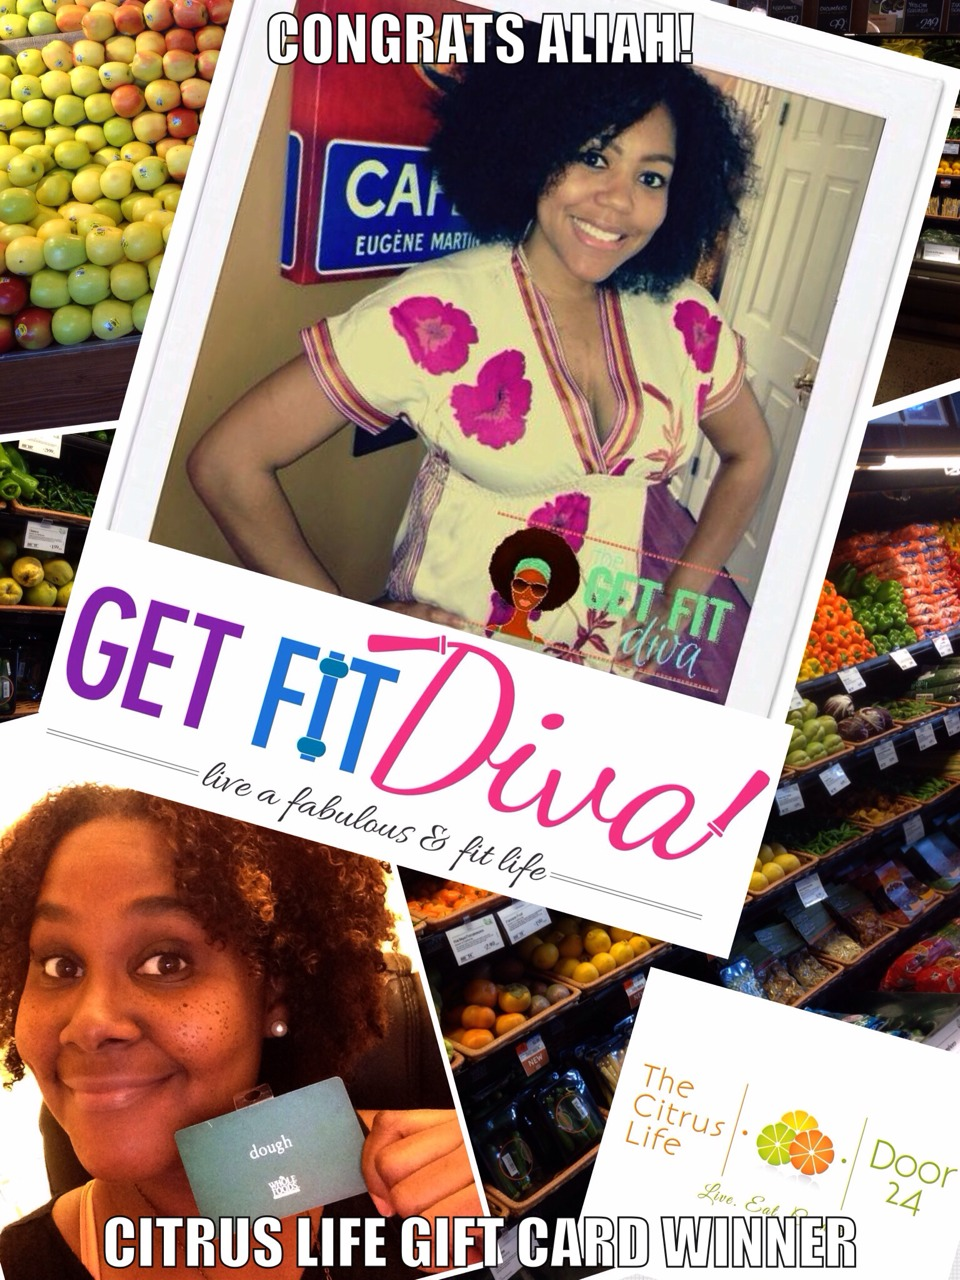 Congrats Aliah on winning The Citrus Life Halloween Whole Foods Gift Card Giveaway! Thanks for your participation and feedback. Check out Aliah on her FB page at Chronicles of a (Trying To Be) Fit Diva, online at Thegetfitdiva.com, aliahpr.com, and thisdivatravels.com. Happy Halloween!